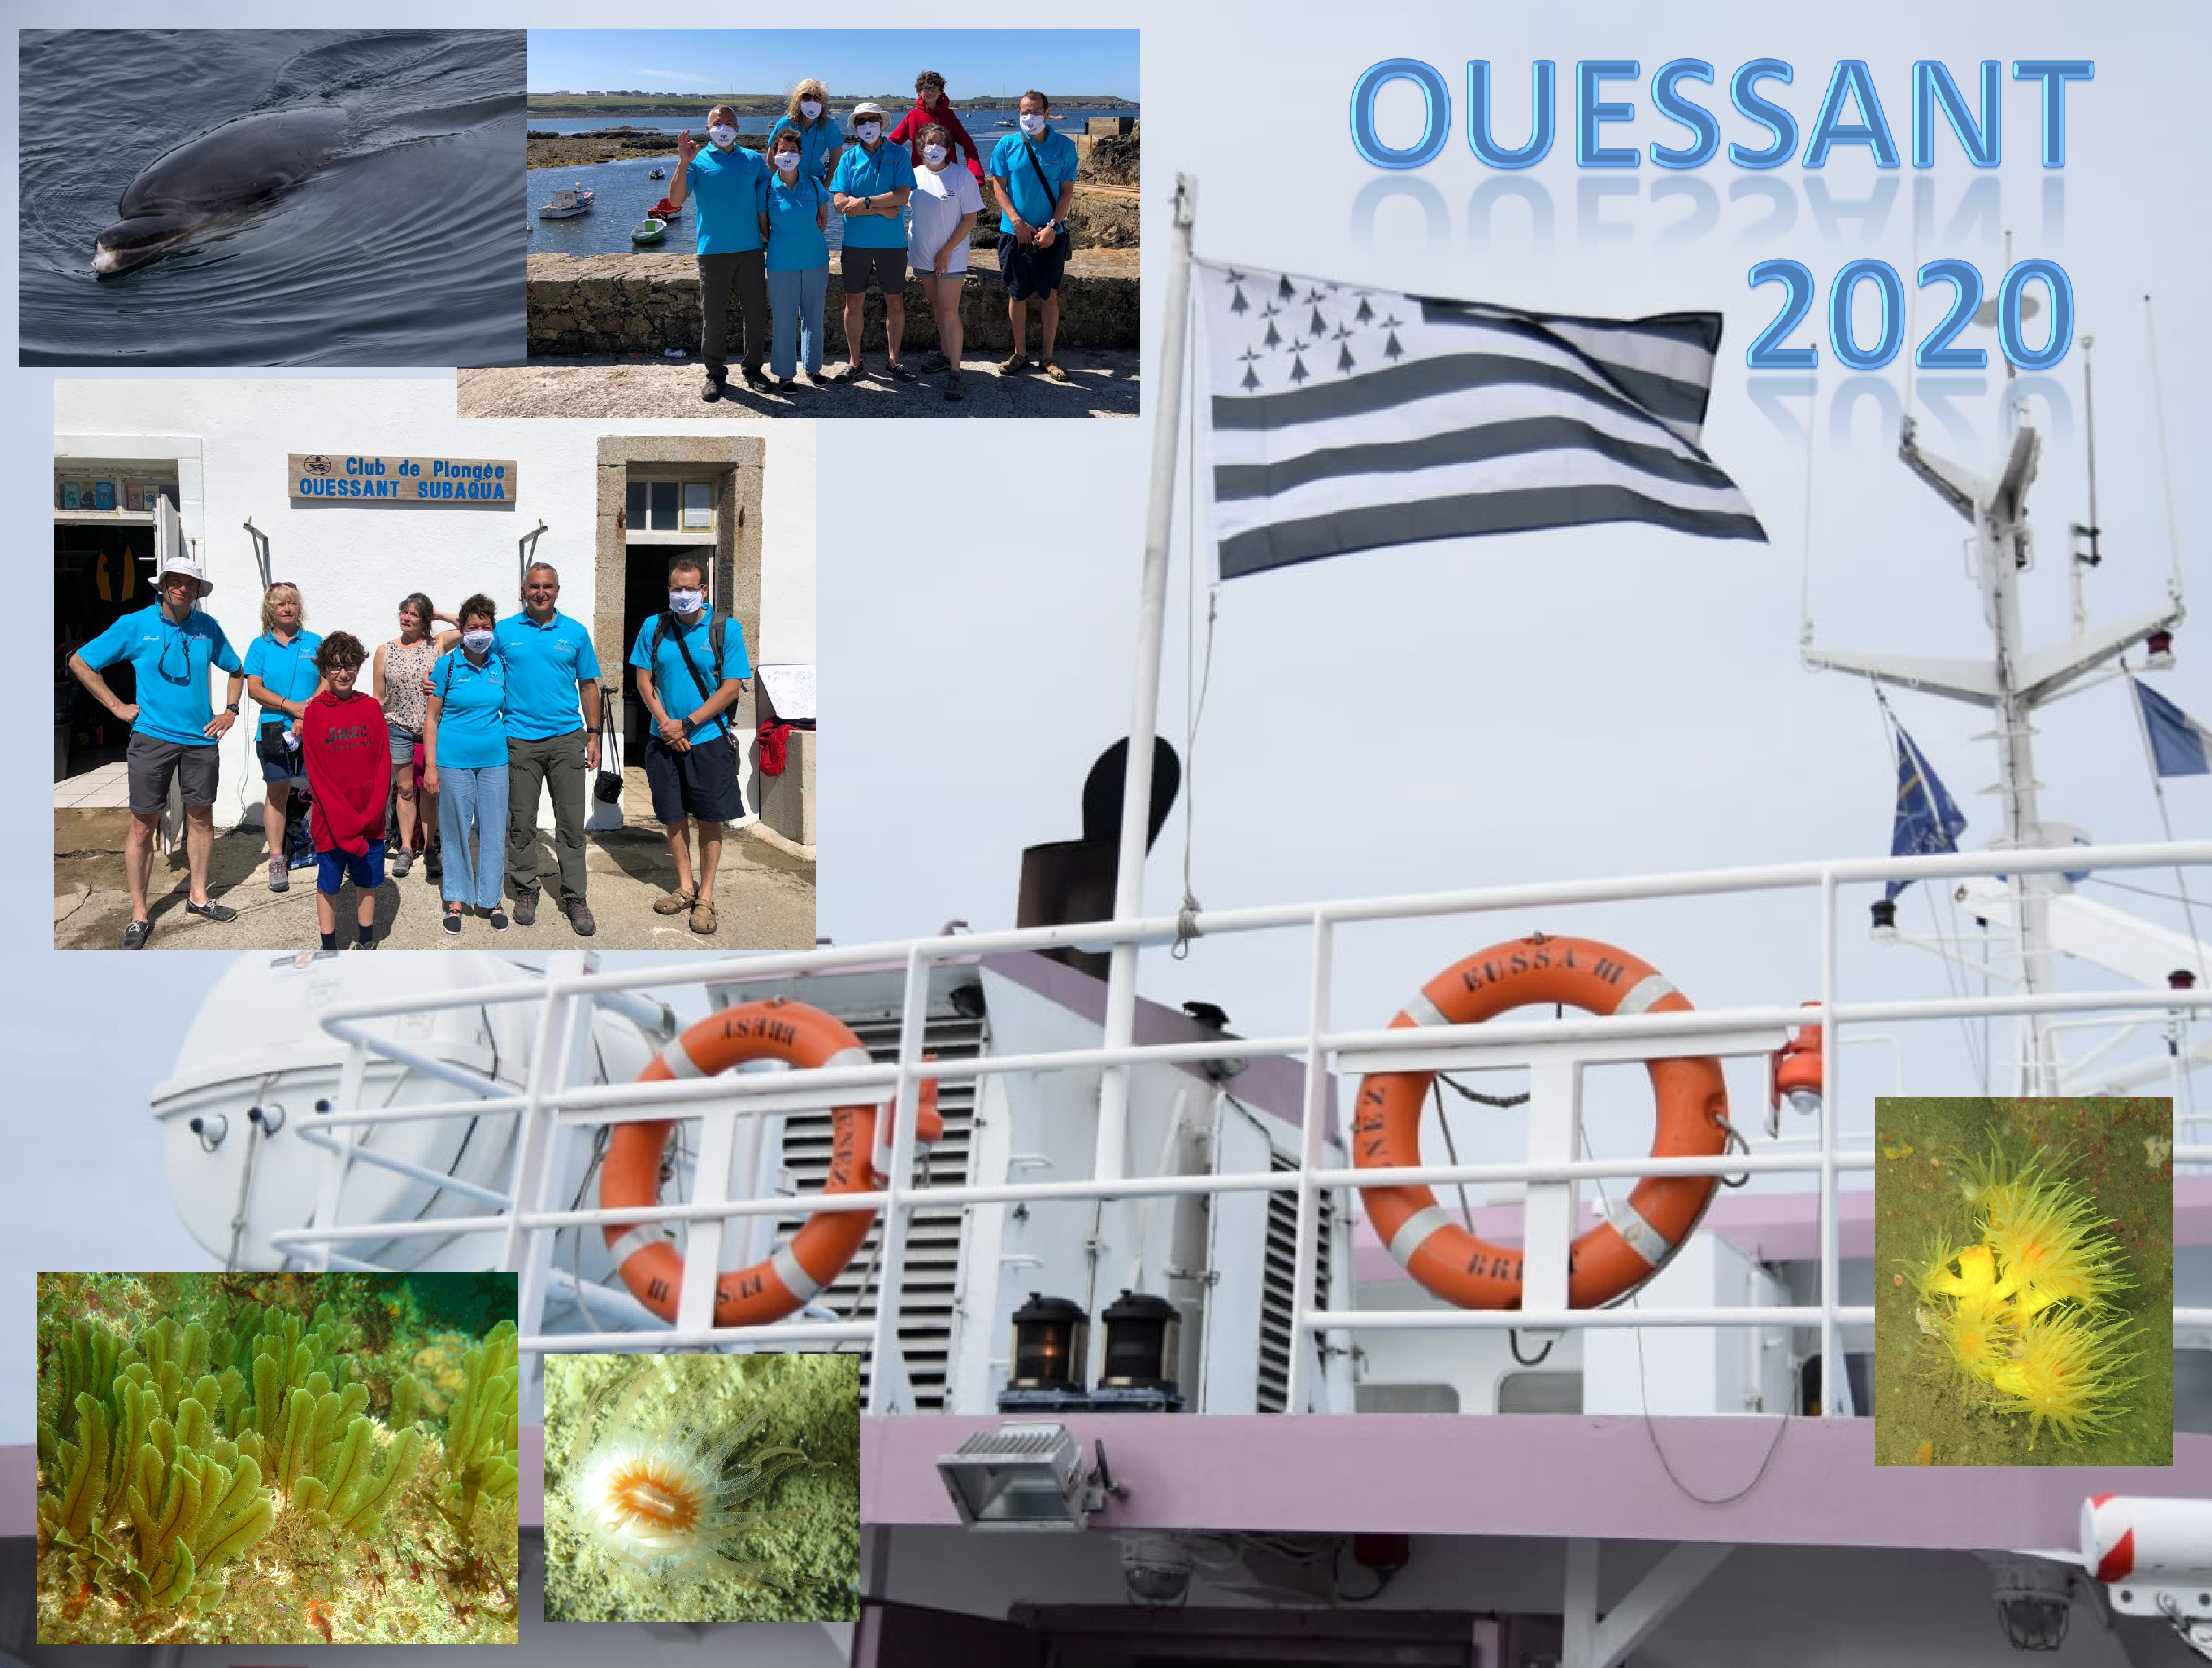 Ouessant 2020